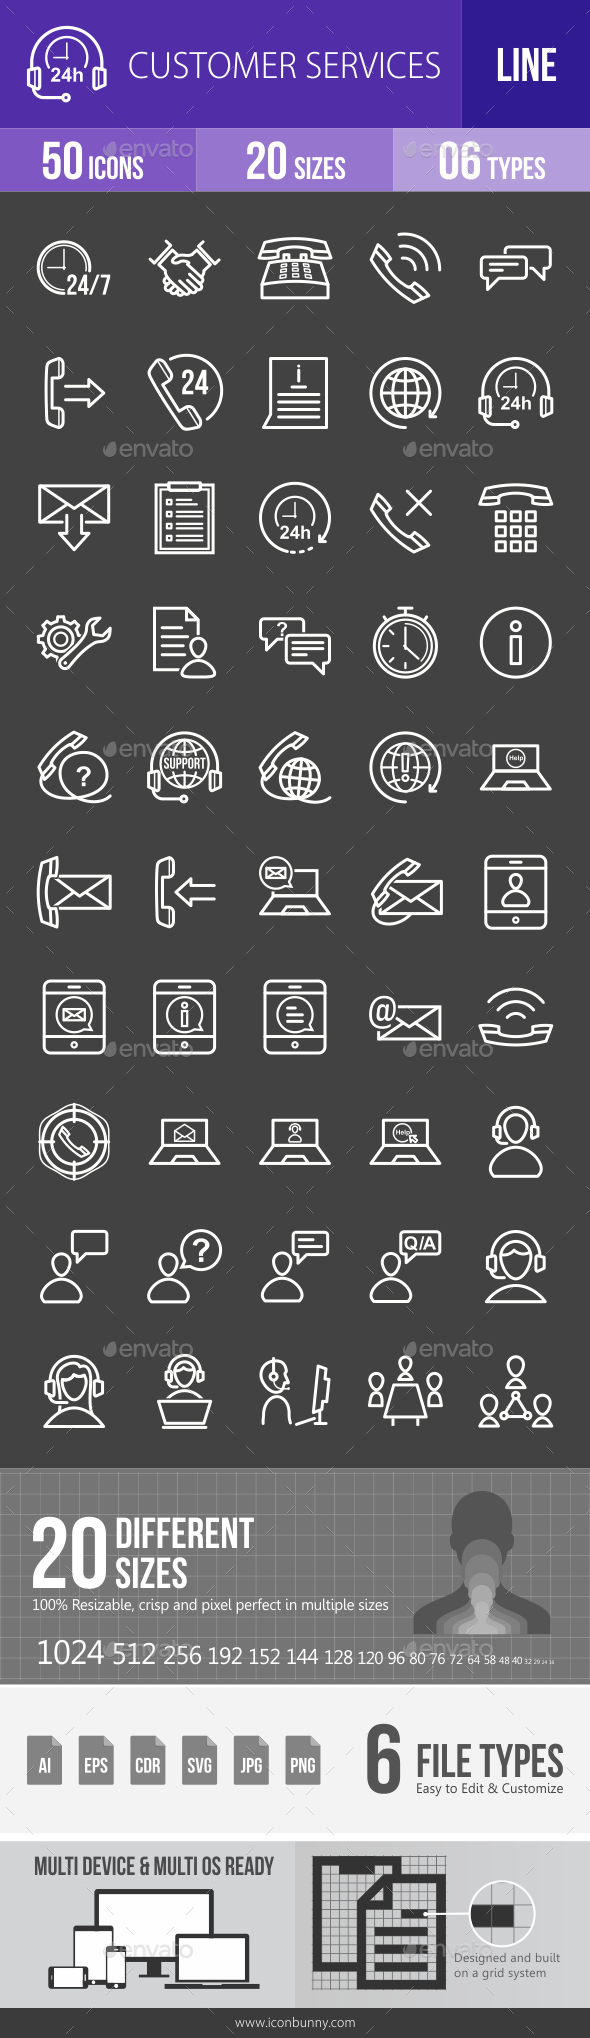 Customer Services Line Inverted Icons - Icons